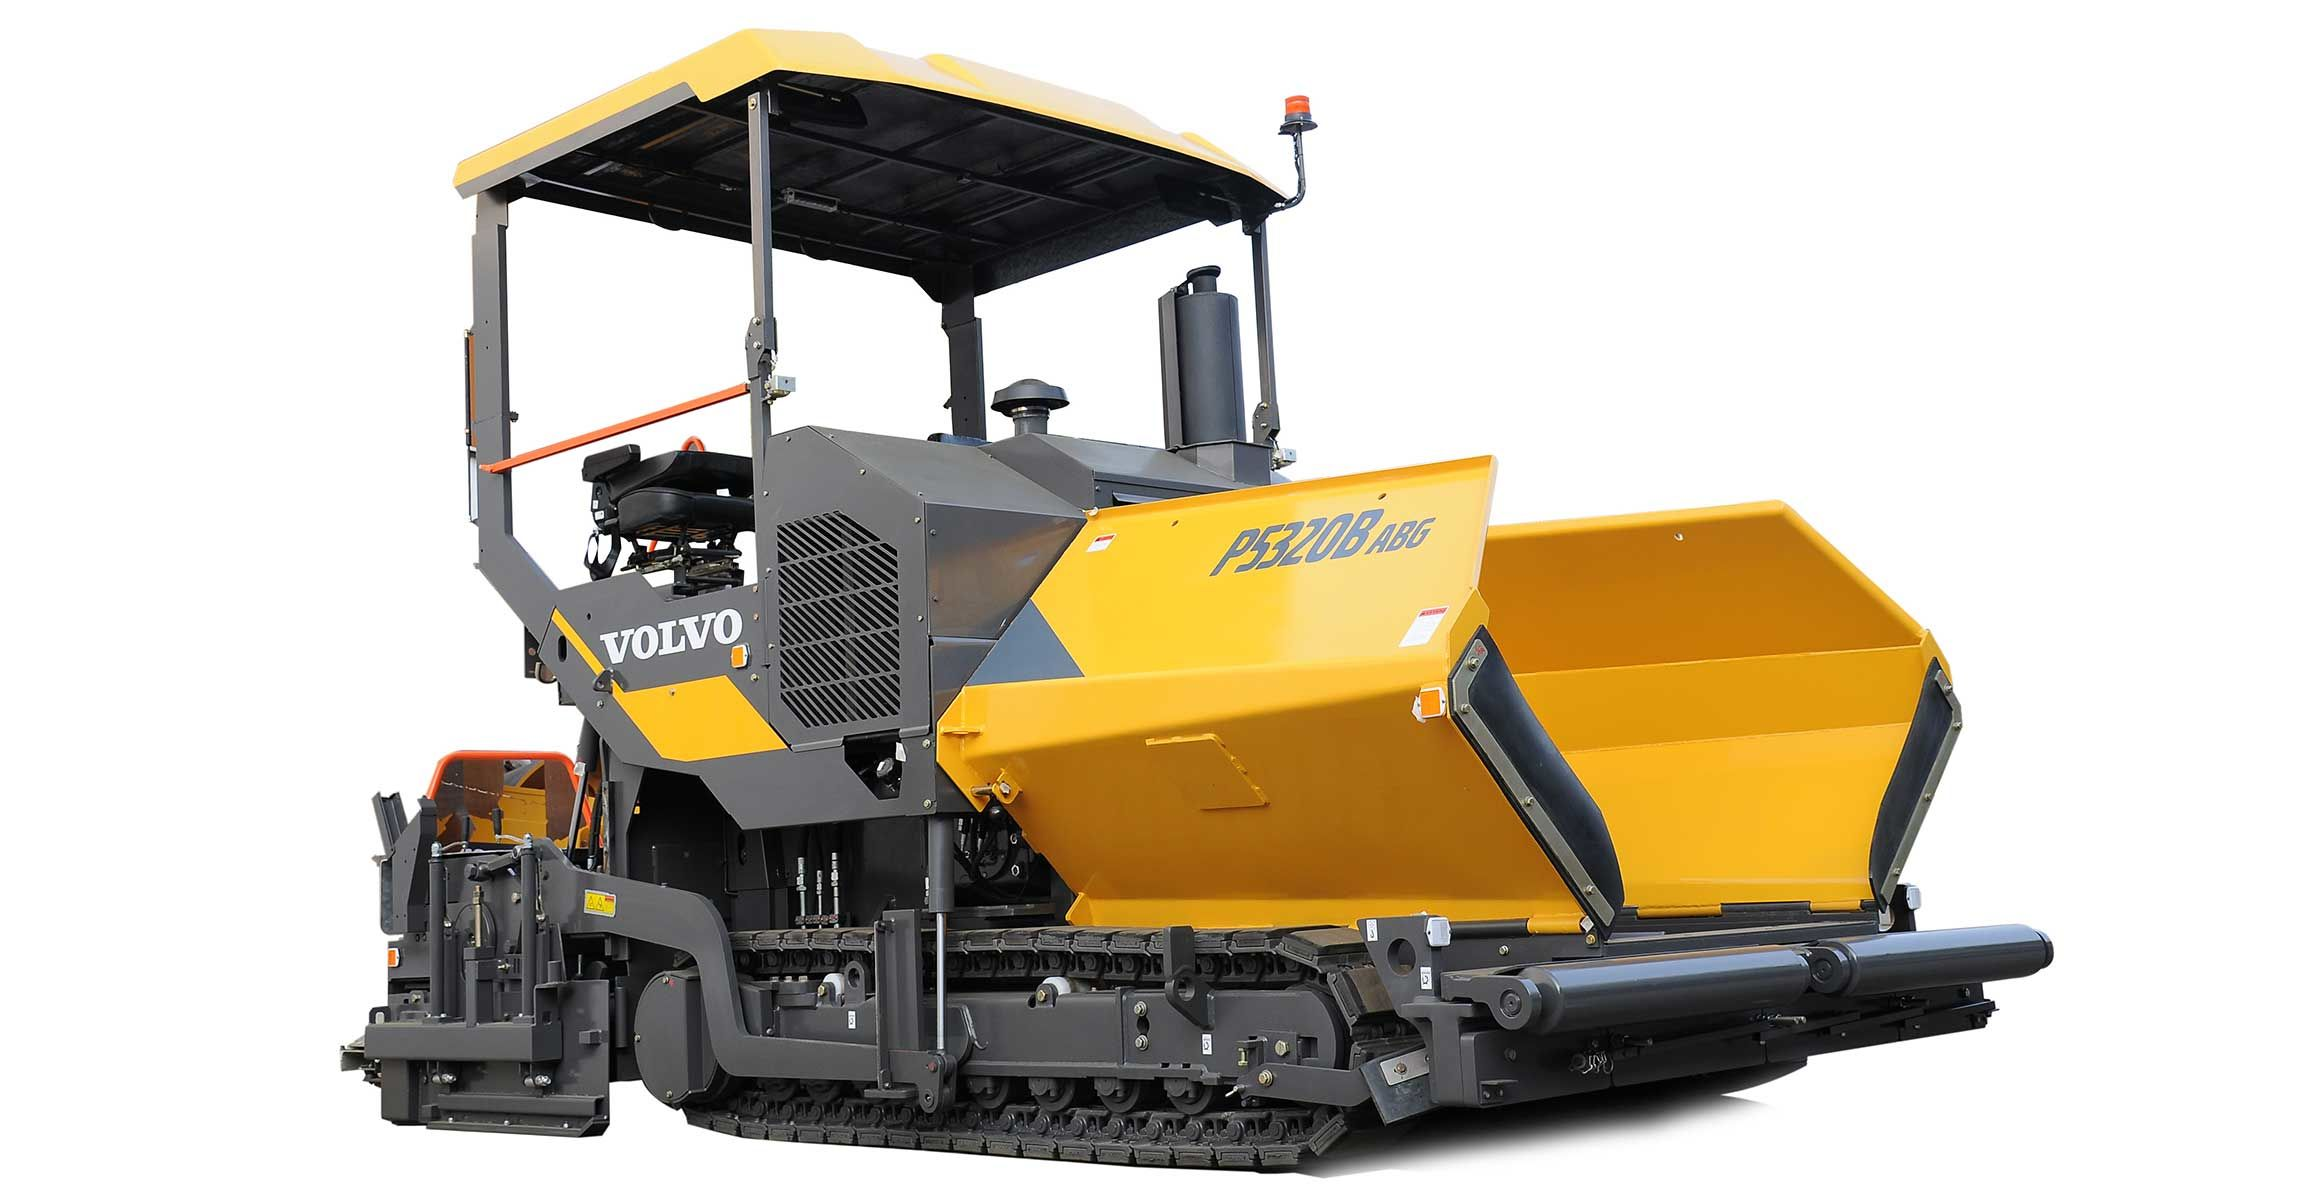 New P5320B ABG paver from Volvo CE makes its first show appearance